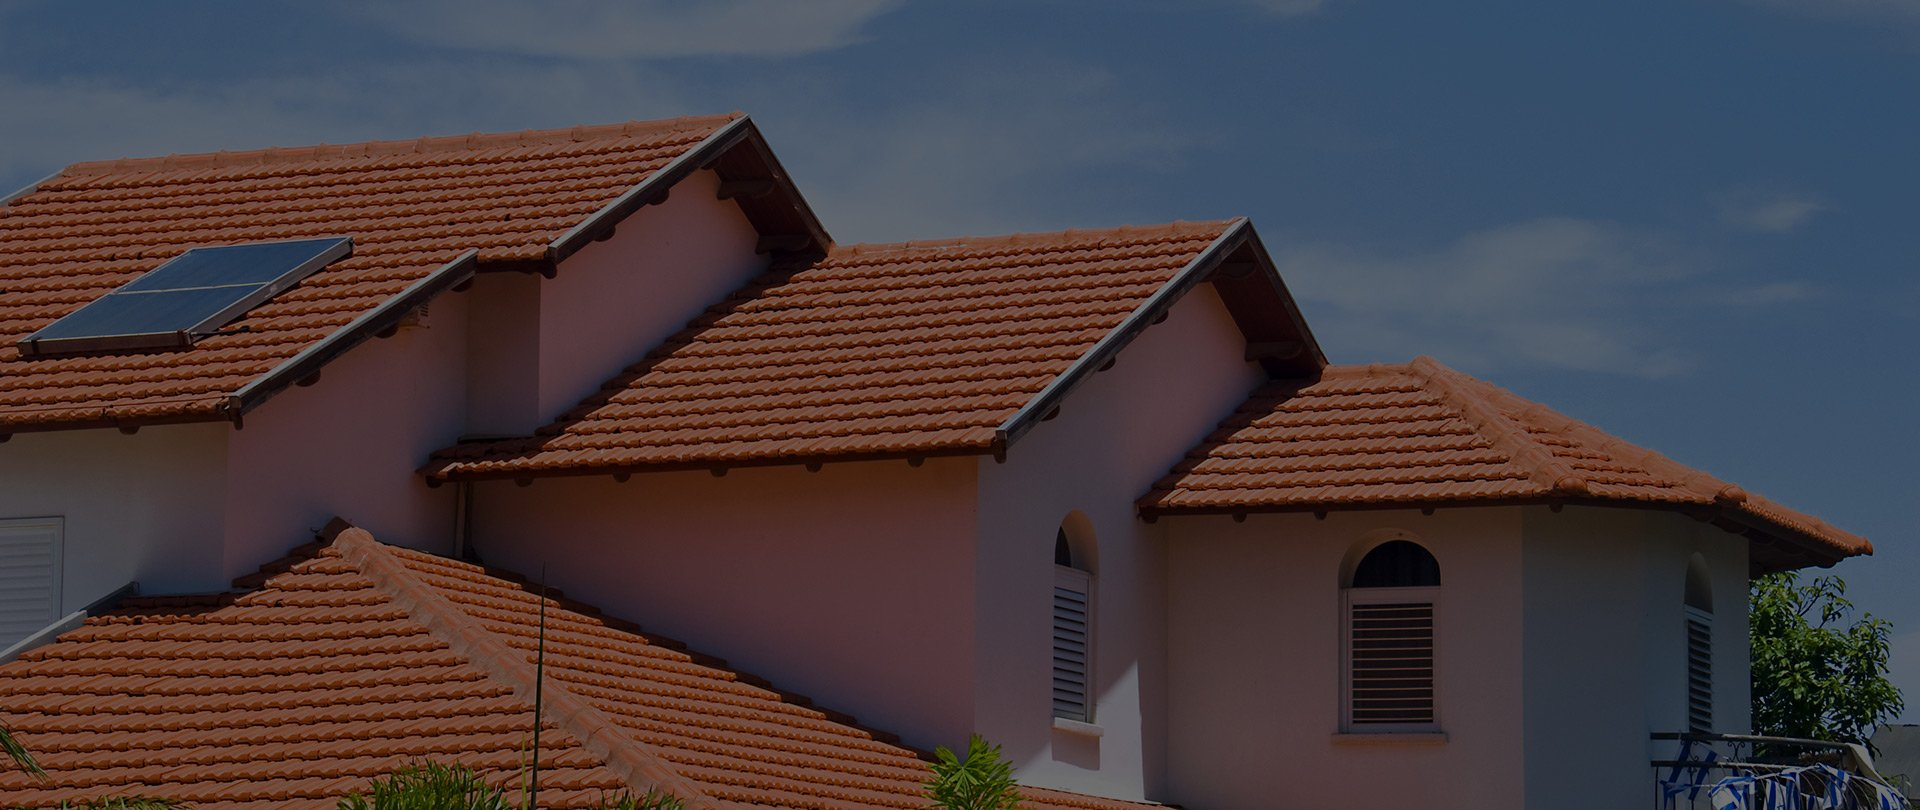 Tile roofing company